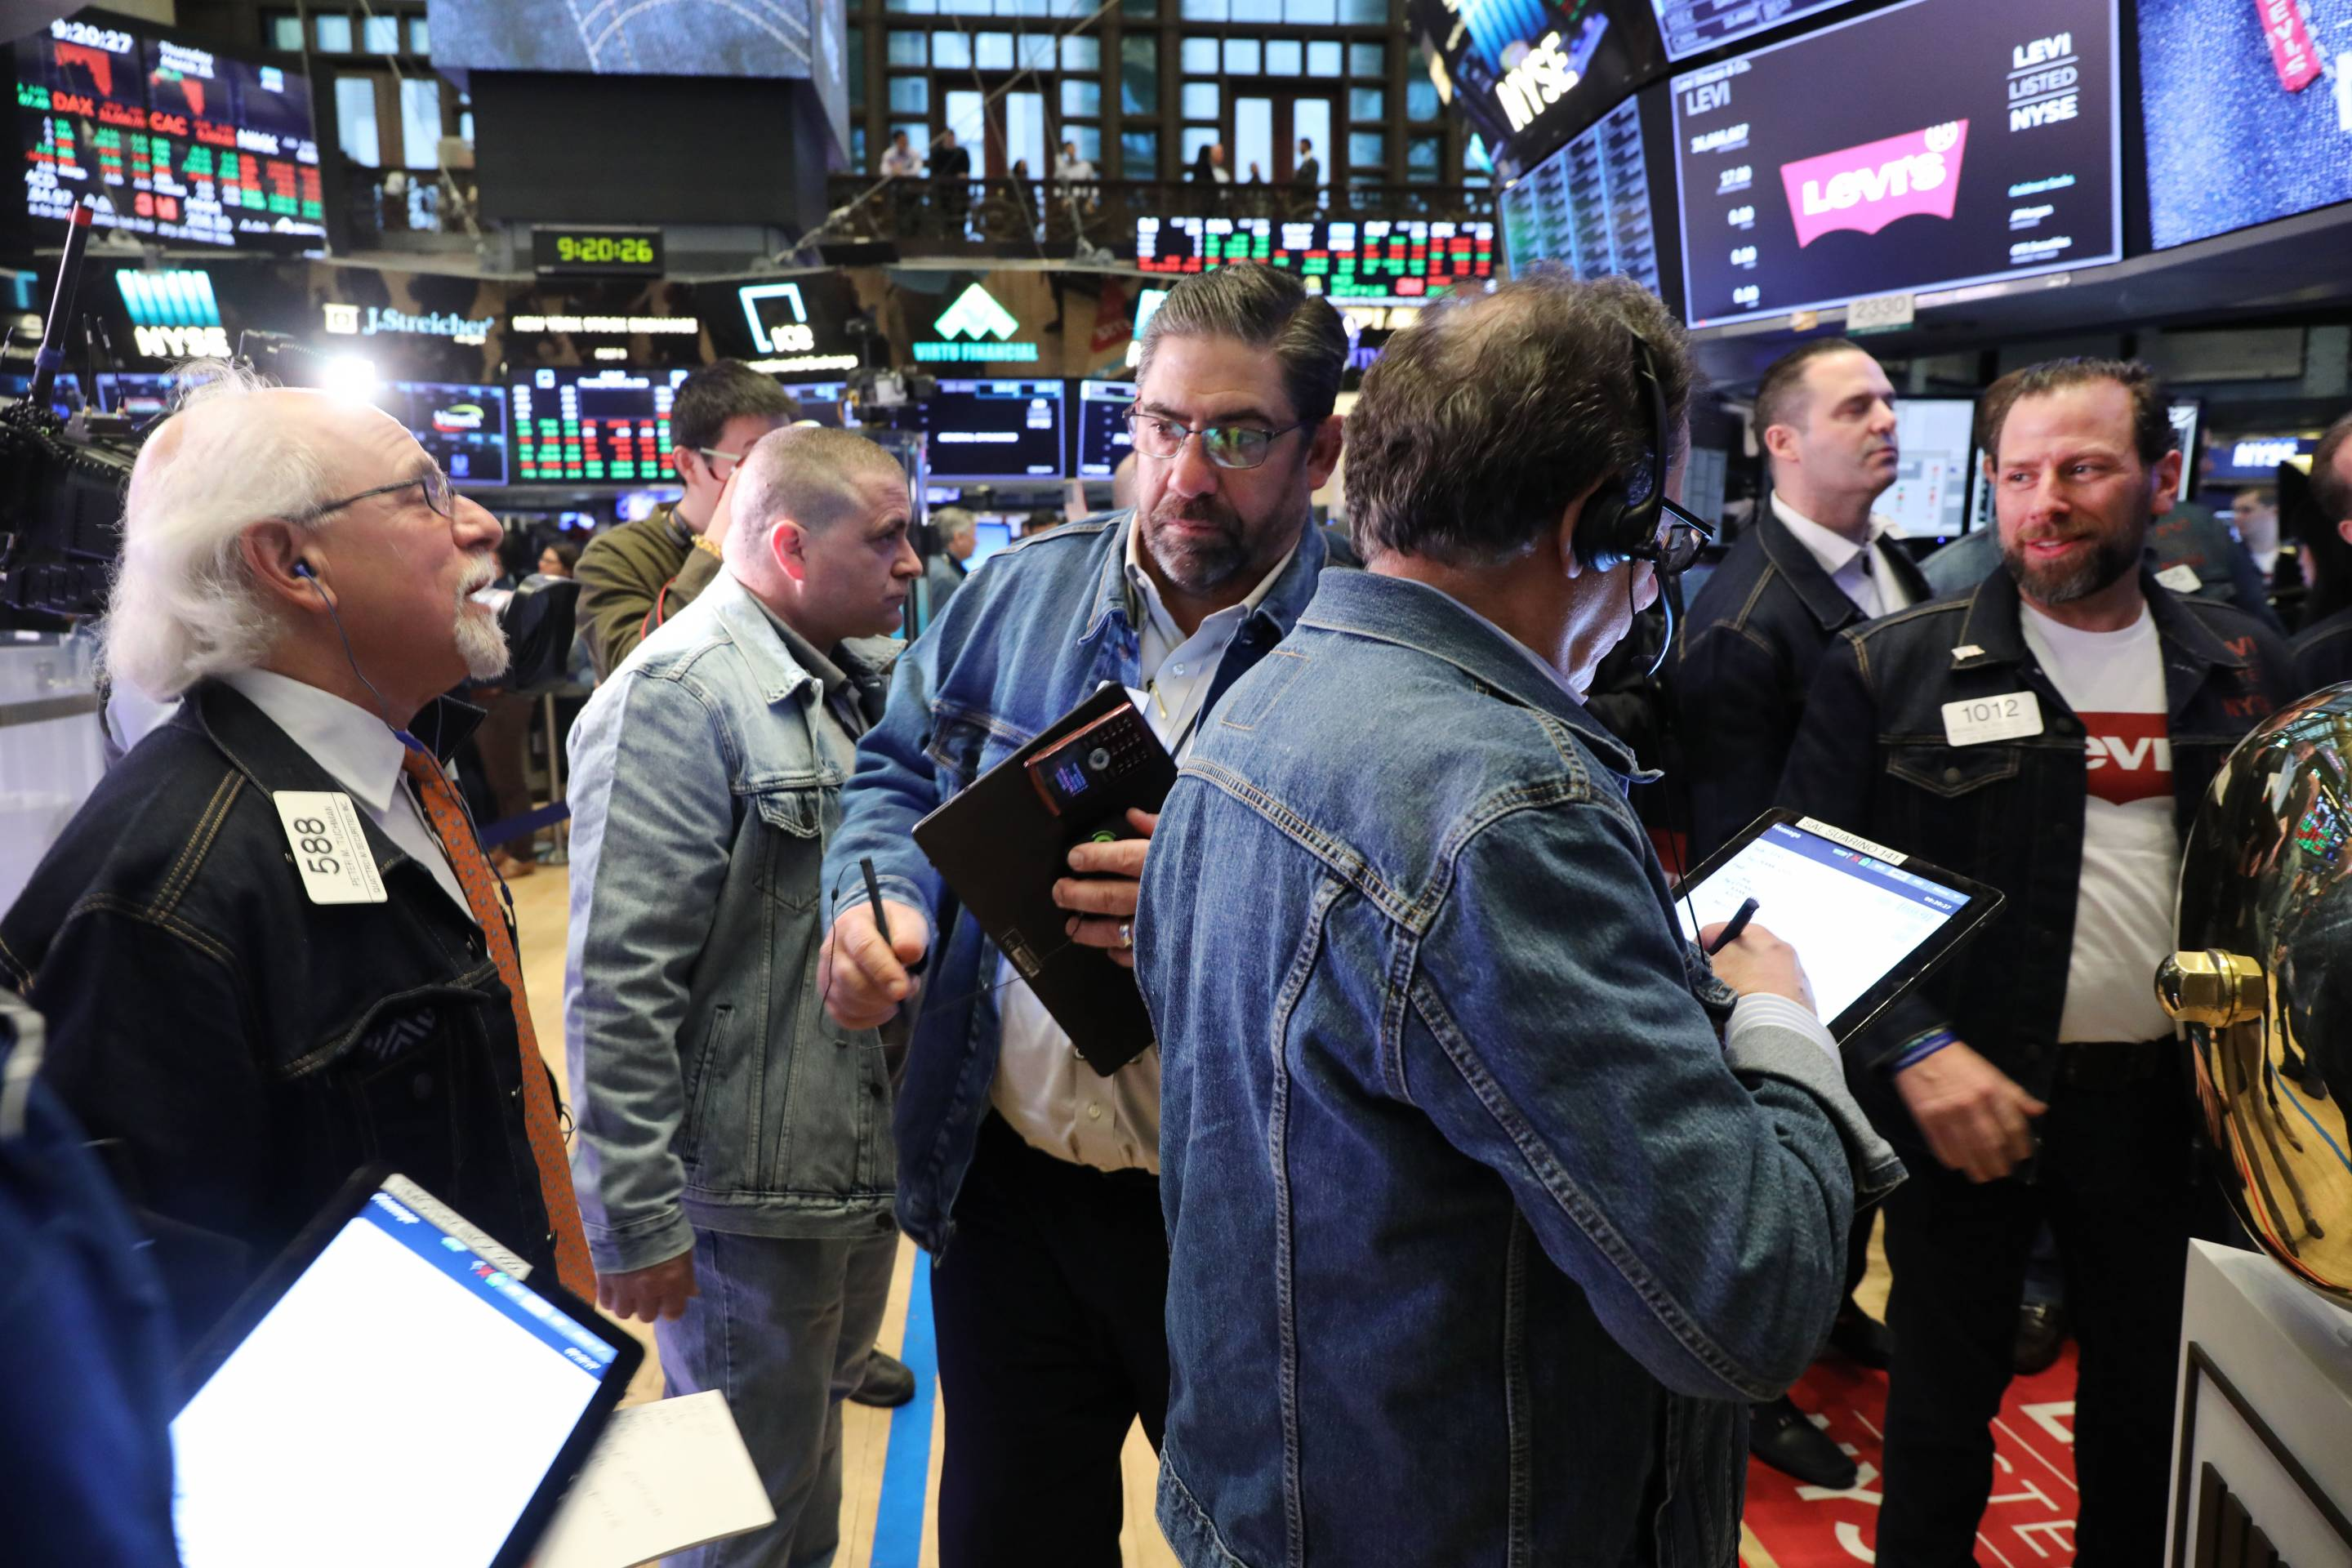 Stock Market Opens On Day Of Levi Strauss IPO